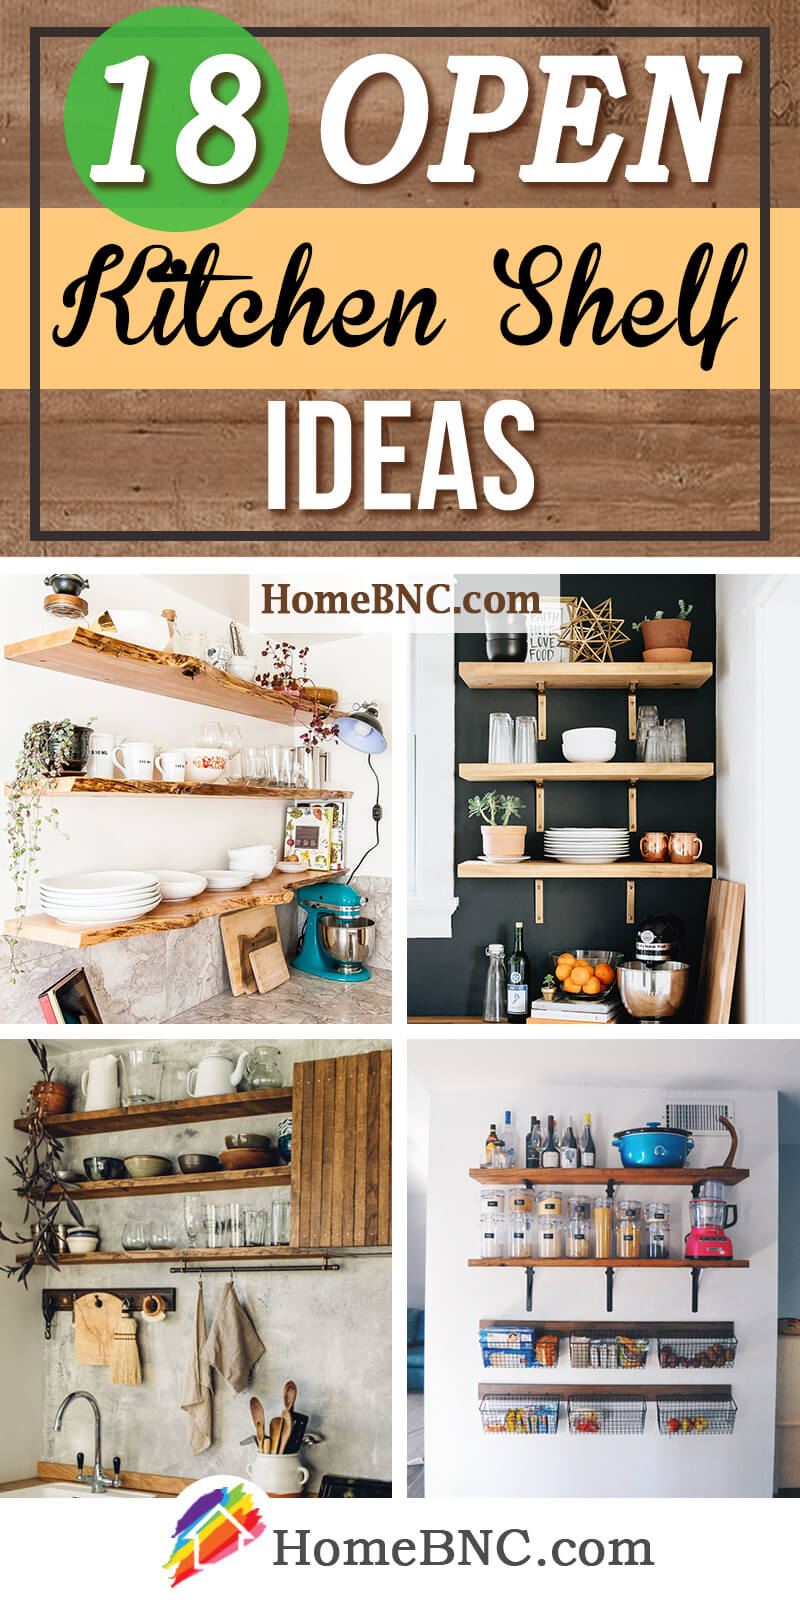 Open Kitchen Shelf Ideas